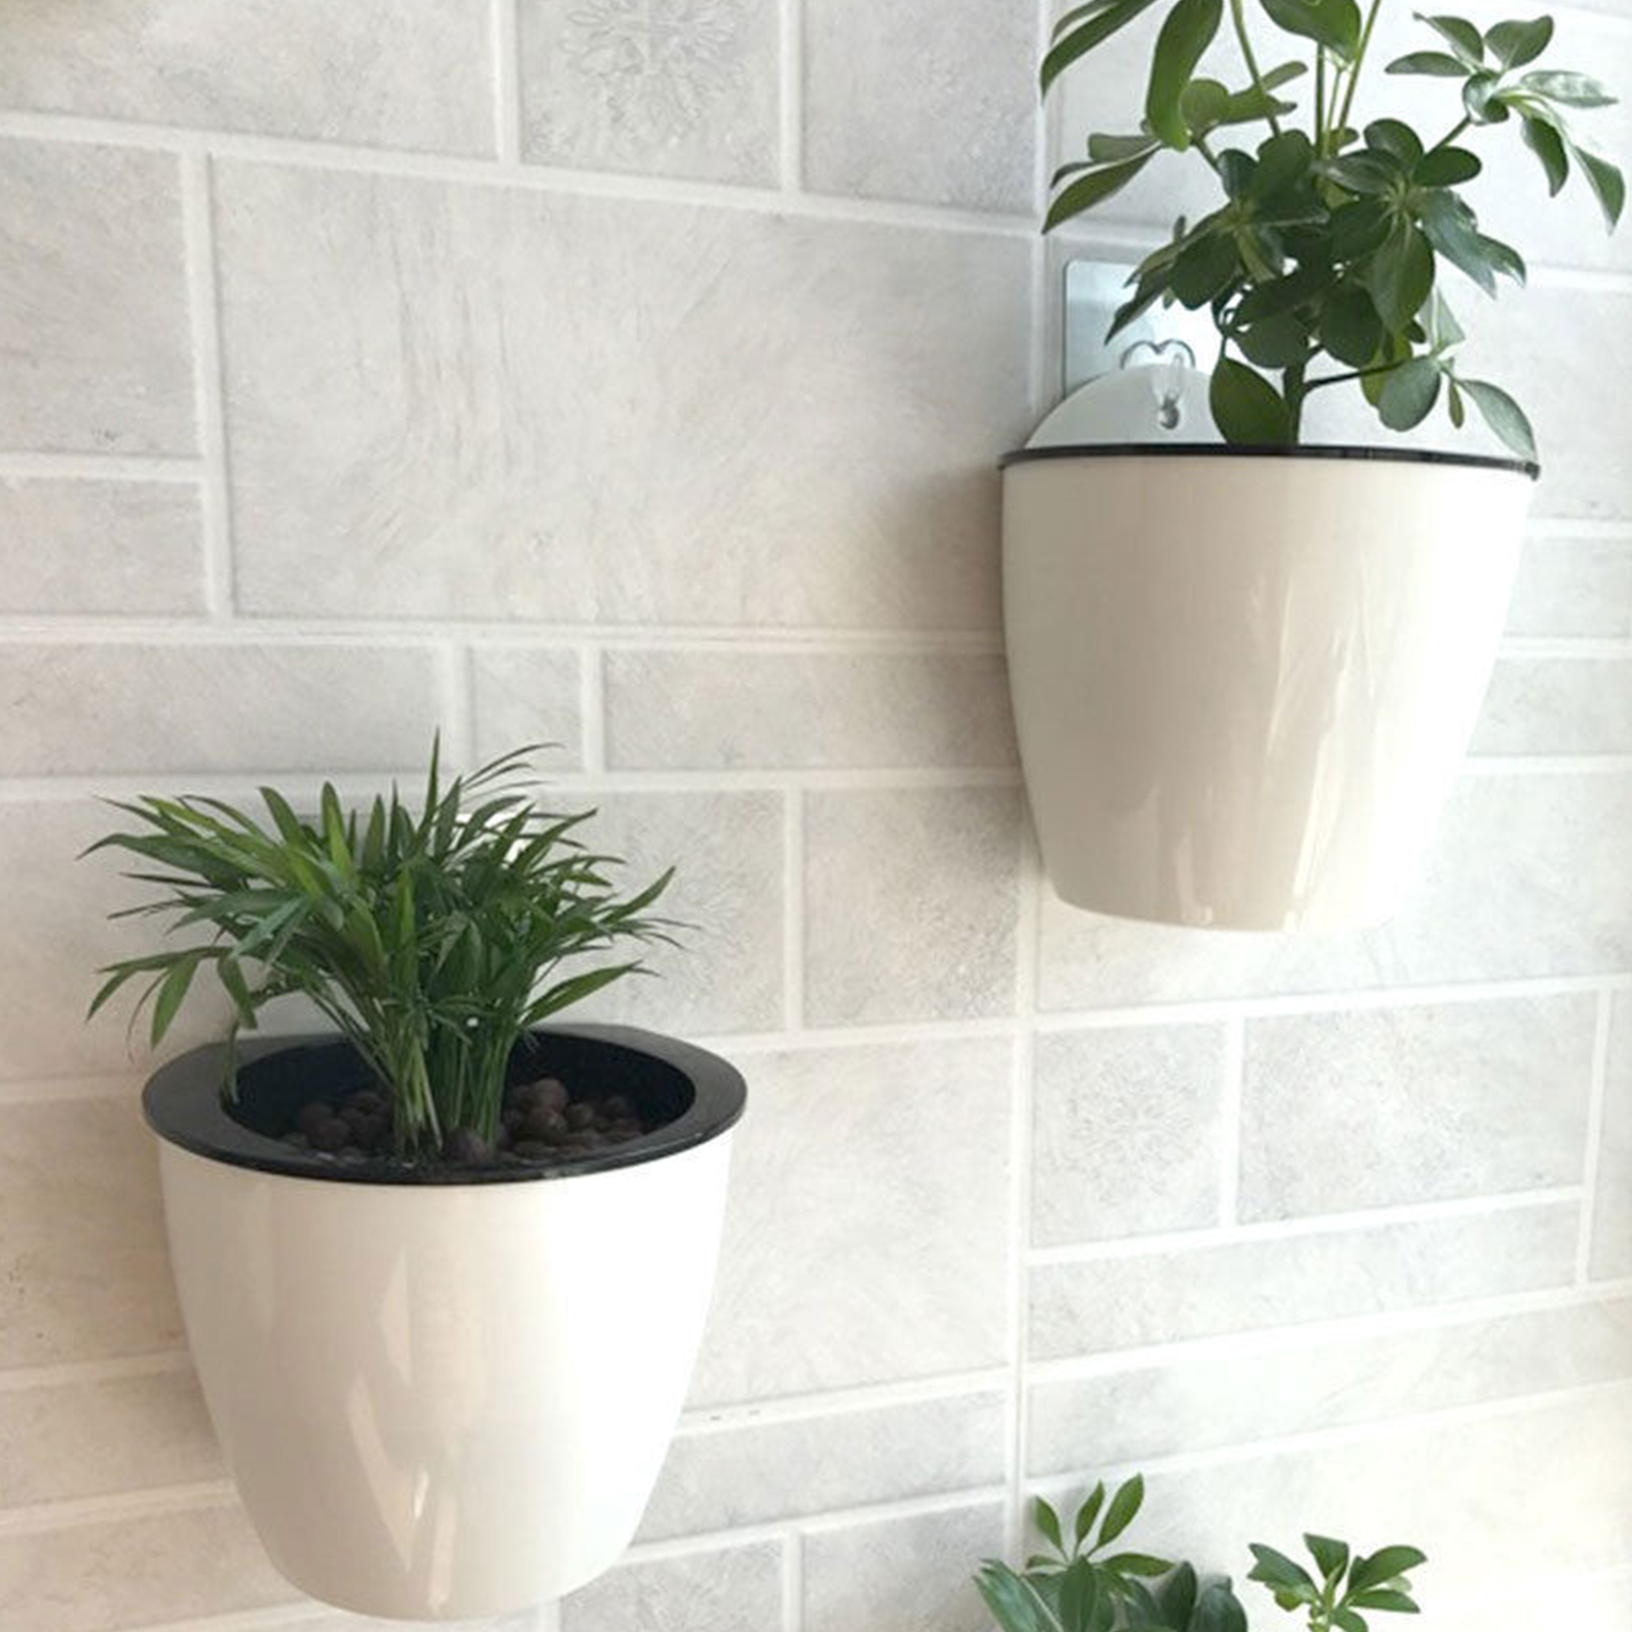 Creative self watering plant flower pot wall hanging for Fence hanging flower pots